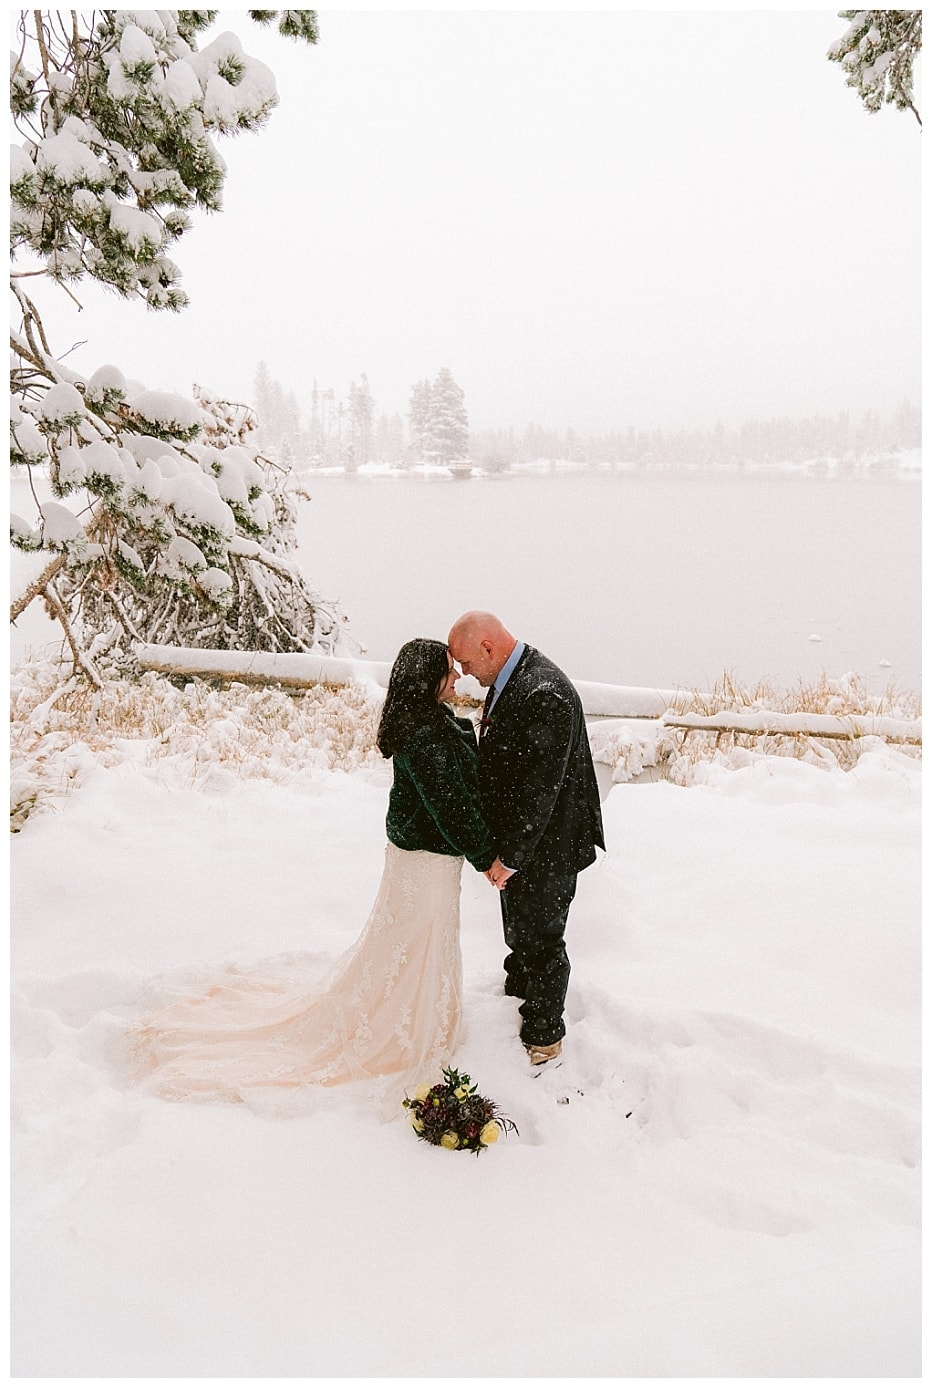 Sprague Lake Elopement in Rocky Mountain National Park // Nikki + Colby